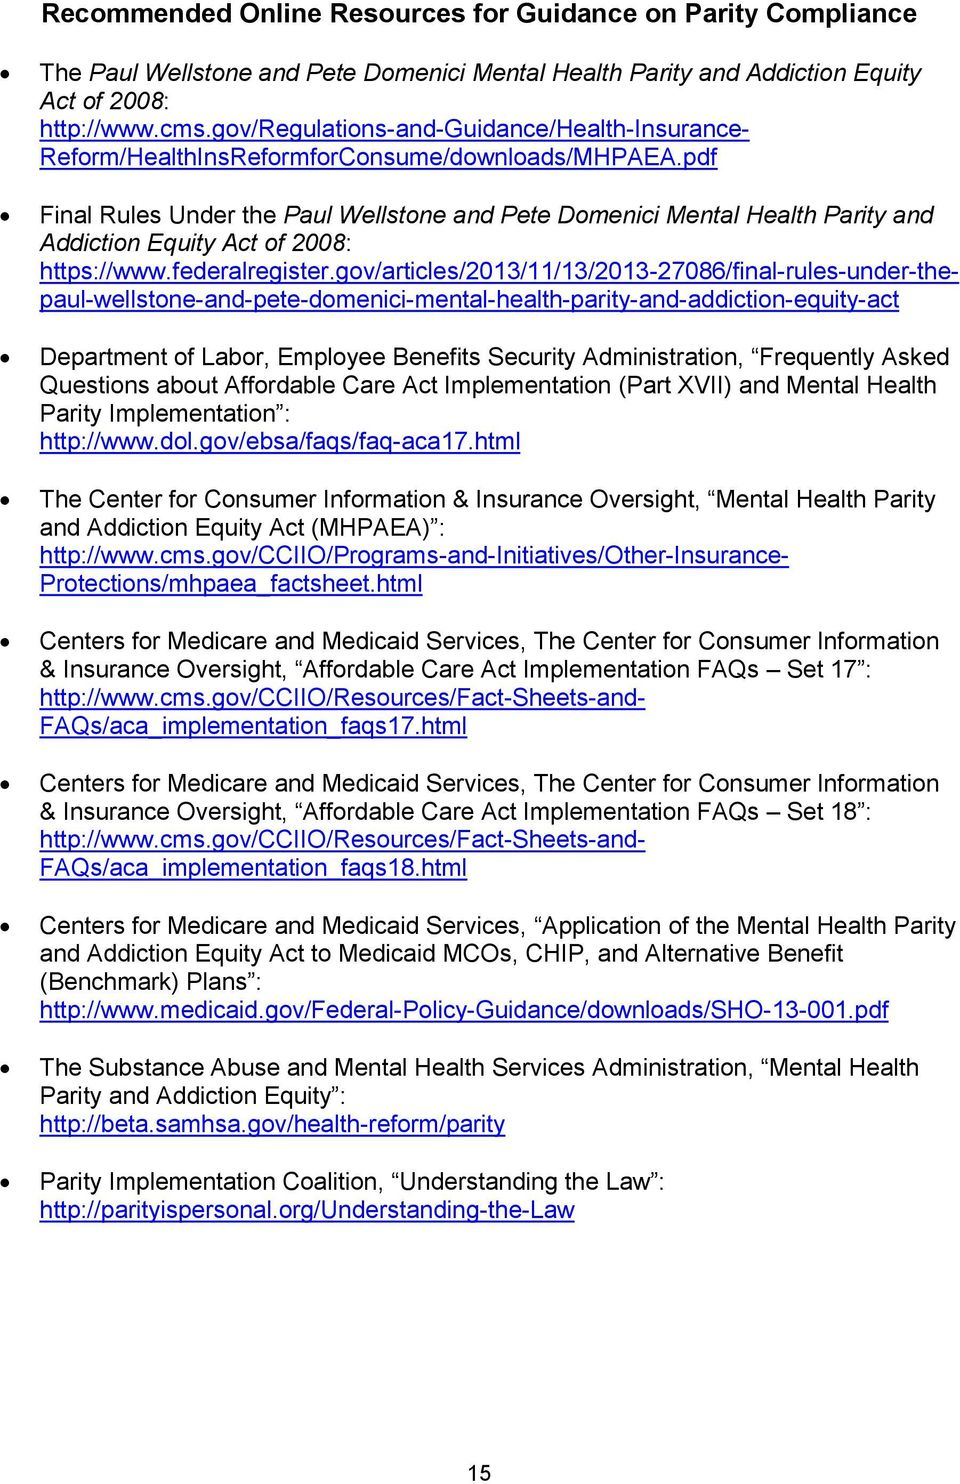 pdf Final Rules Under the Paul Wellstone and Pete Domenici Mental Health Parity and Addiction Equity Act of 2008: https://www.federalregister.